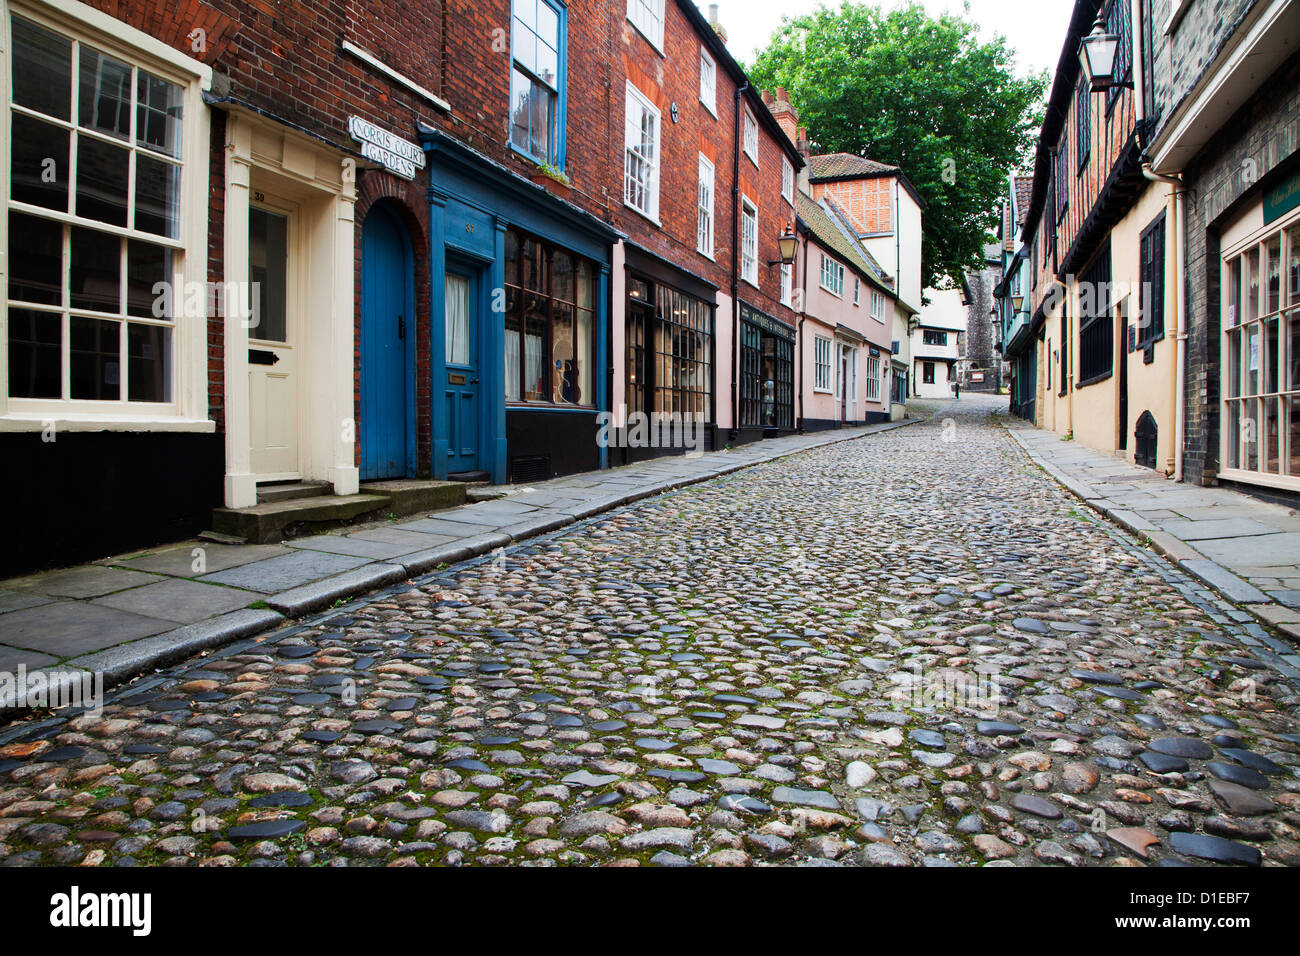 Old cobbled street, Elm Hill, Norwich, Norfolk, England, United Kingdom, Europe - Stock Image